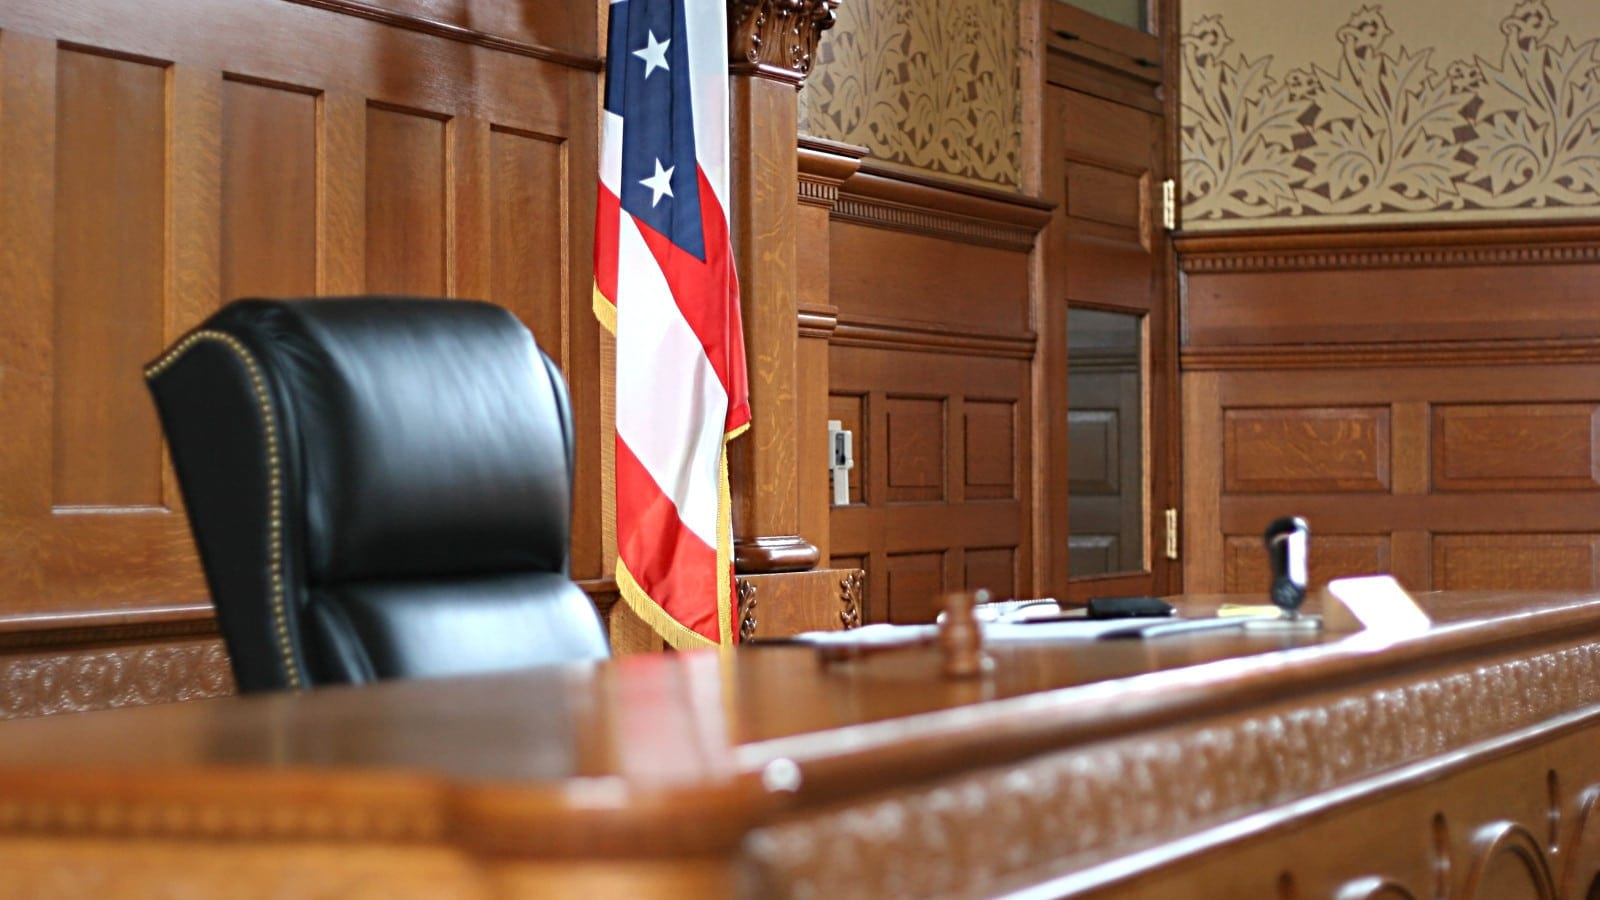 Judge's Bench In A Courtroom Stock Photo